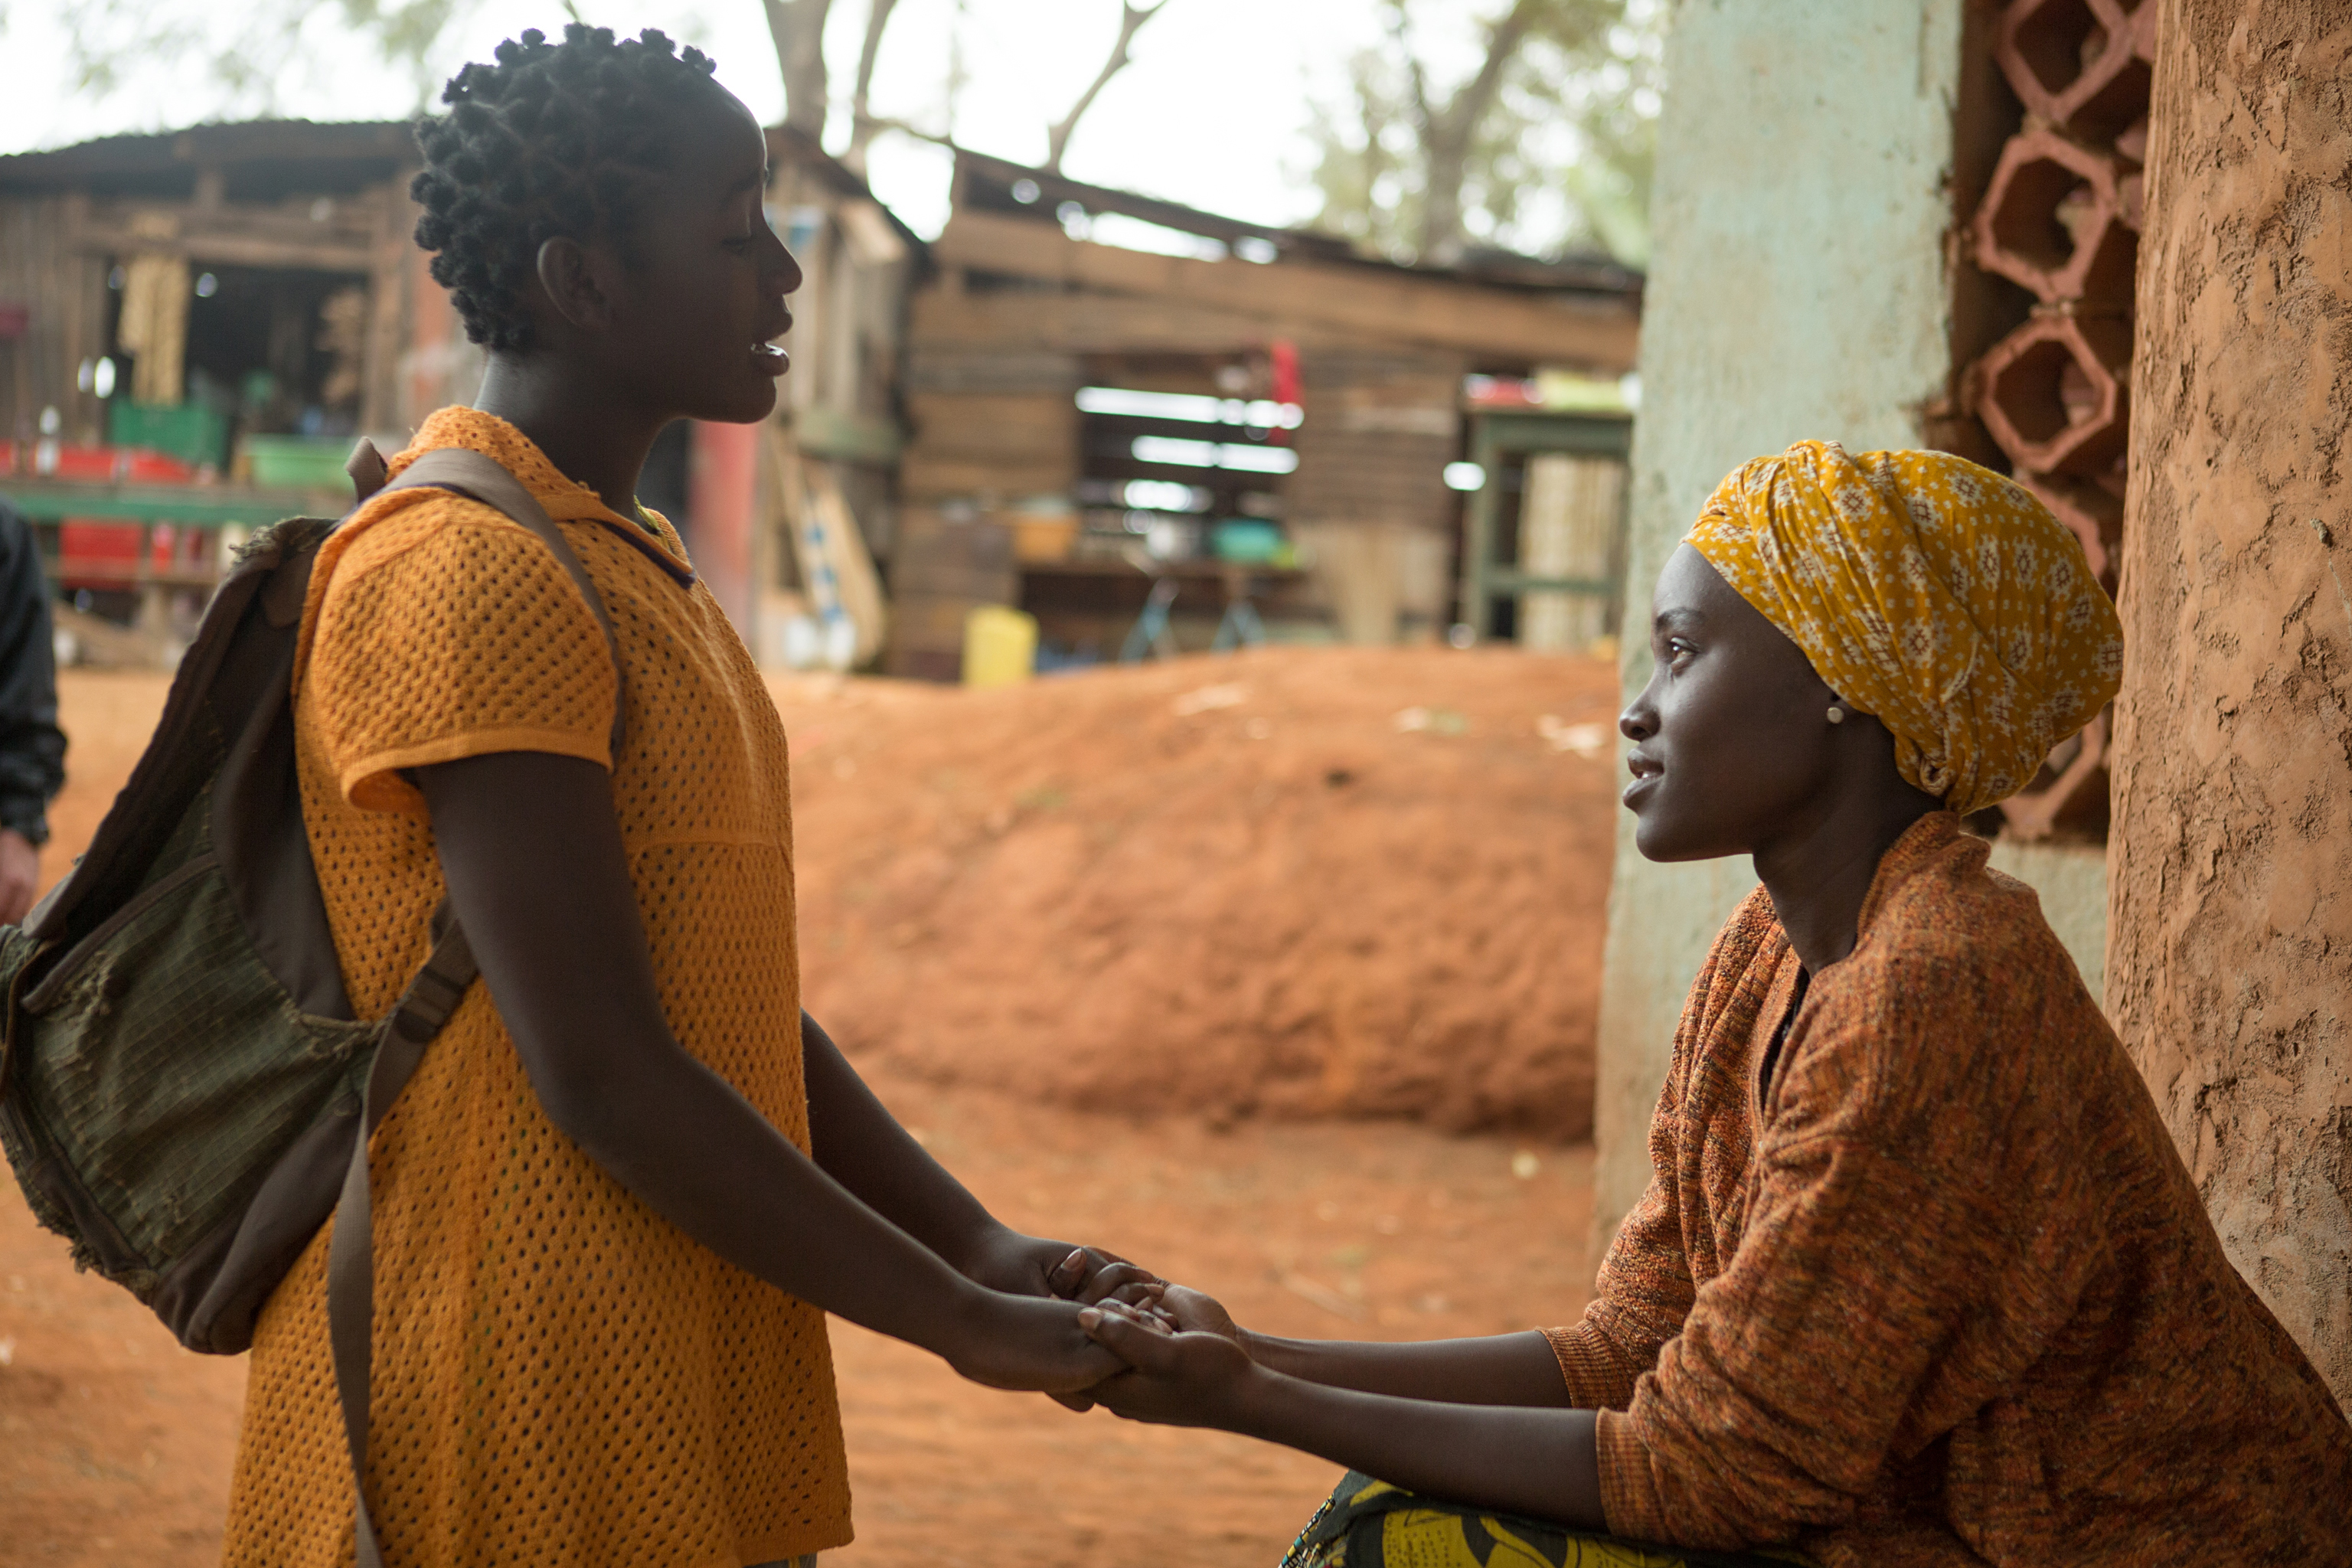 Queen of Katwe rs beautiful, empowering, and inspirational.